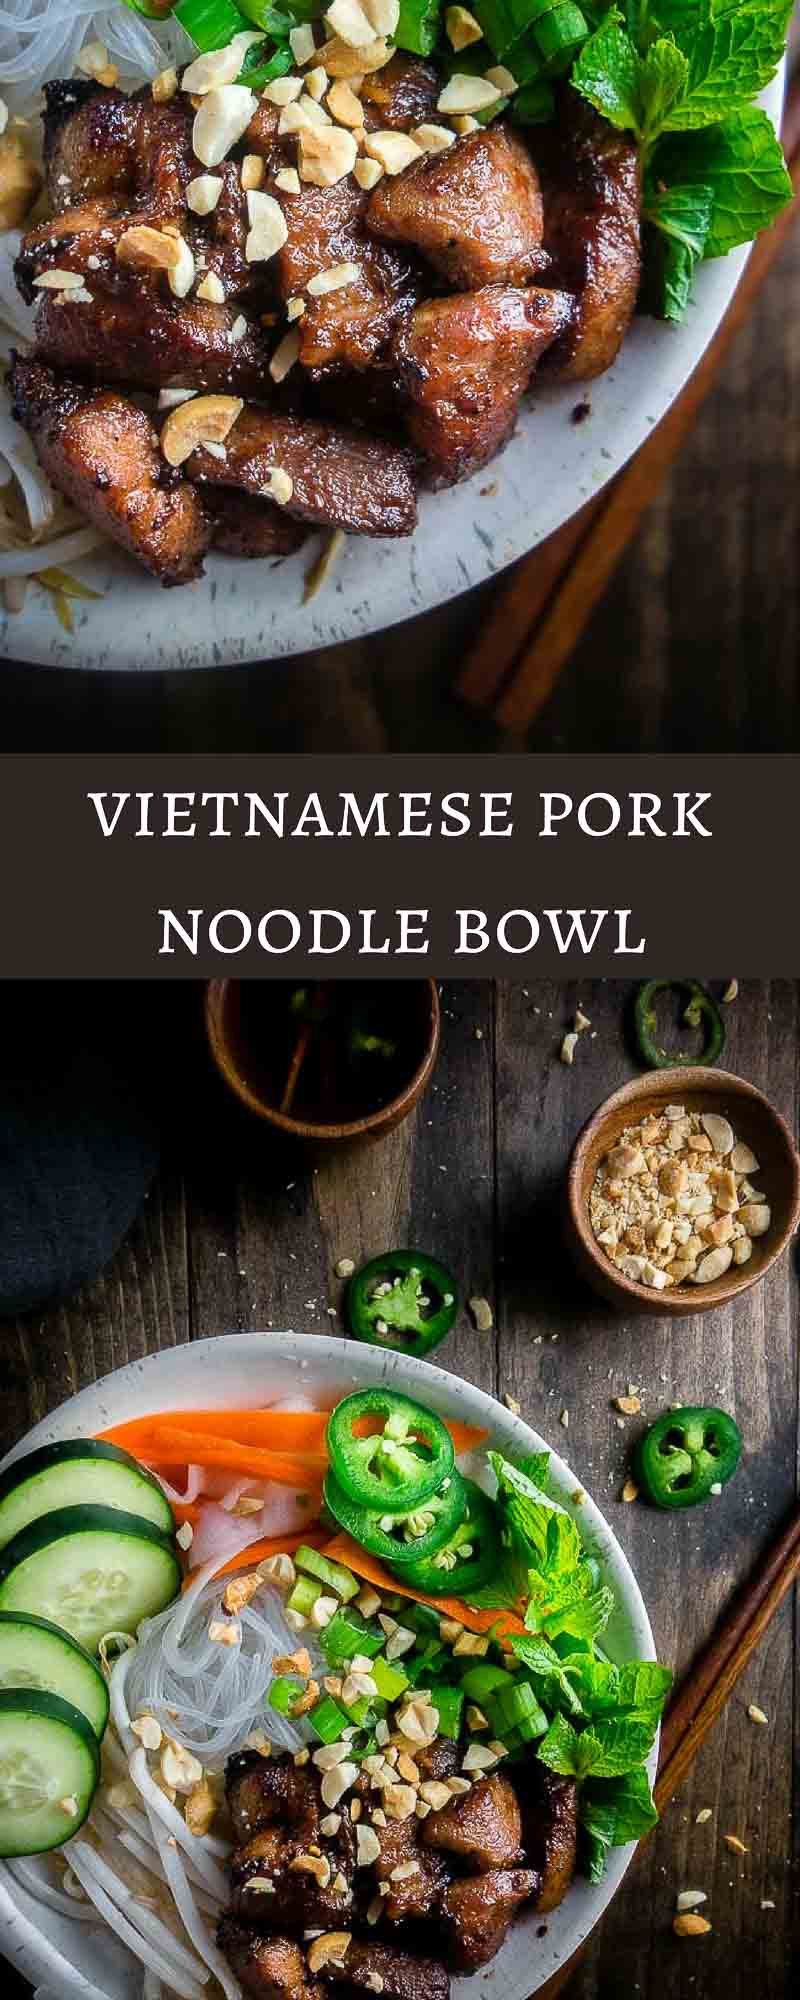 Tender pieces of marinated pork, stir fried until crisp on a bed of rice noodles, bean sprouts, and fresh herbs and served with Vietnamese dipping sauce (nuoc cham), this Vietnamese Pork Noodle Bowl is delicious and super easy to make.bun thit nuong | easy pork noodle bowl | healthy pork noodle bowl | vietnamese pork | vermicelli bowl | vietnamese pork vermicelli | caramelized pork noodle bowl | lemongrass pork noodle bowl | quick vietnamese noodle bowls